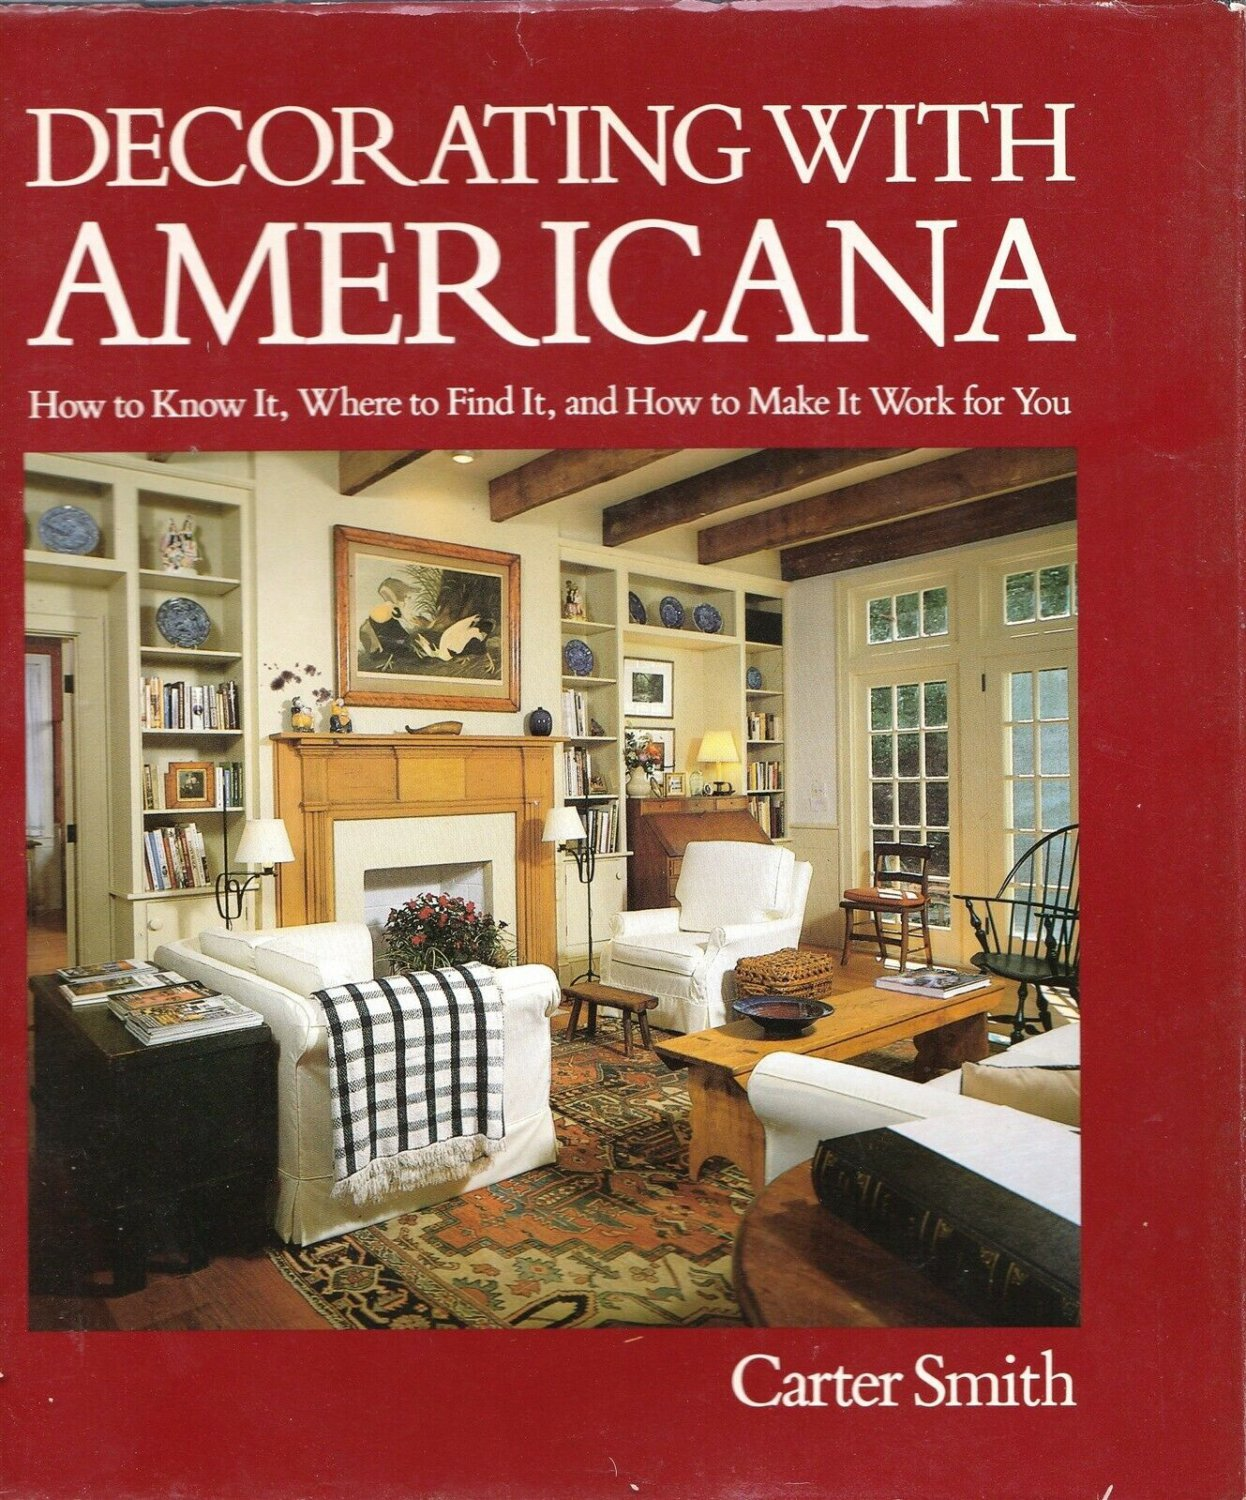 Carter Smith - Decorating With Americana - 1985 - Hardcover